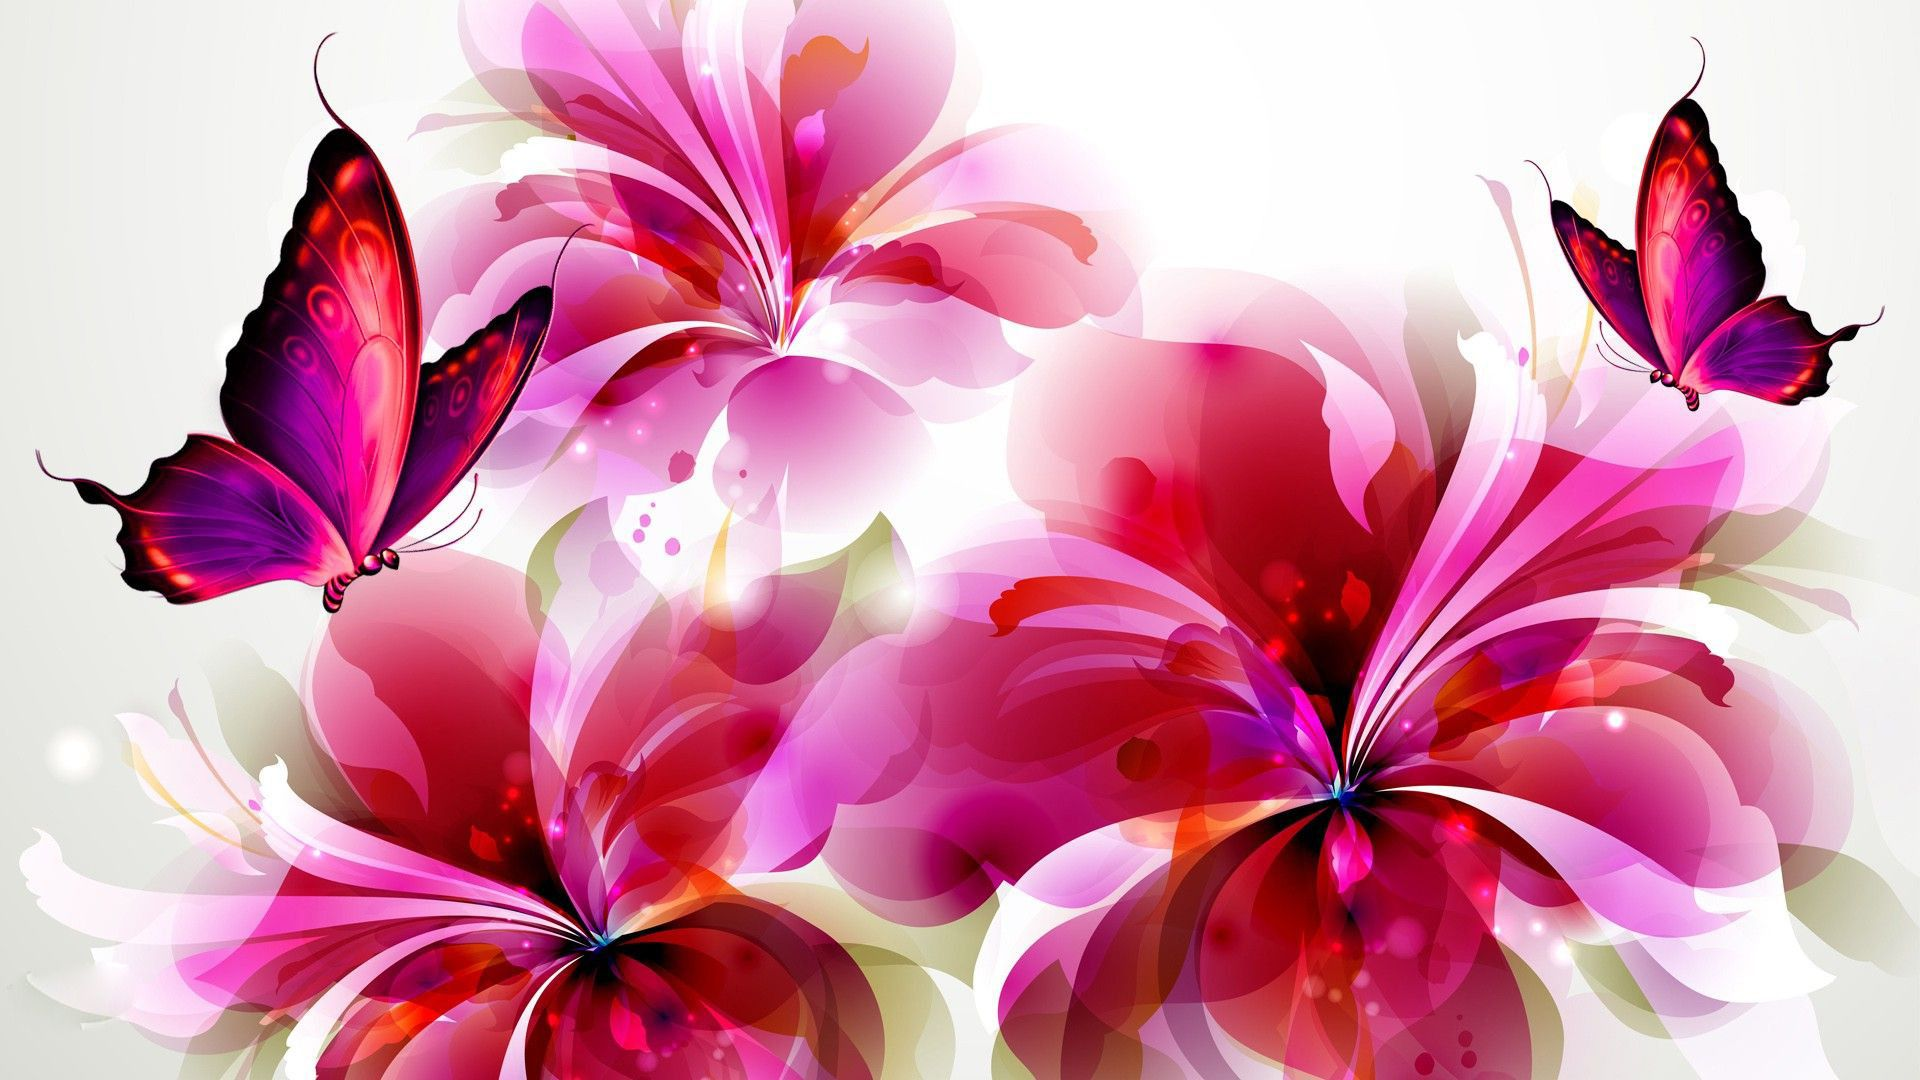 butterflies and flowers clip art | flowers and butterflies wallpaper